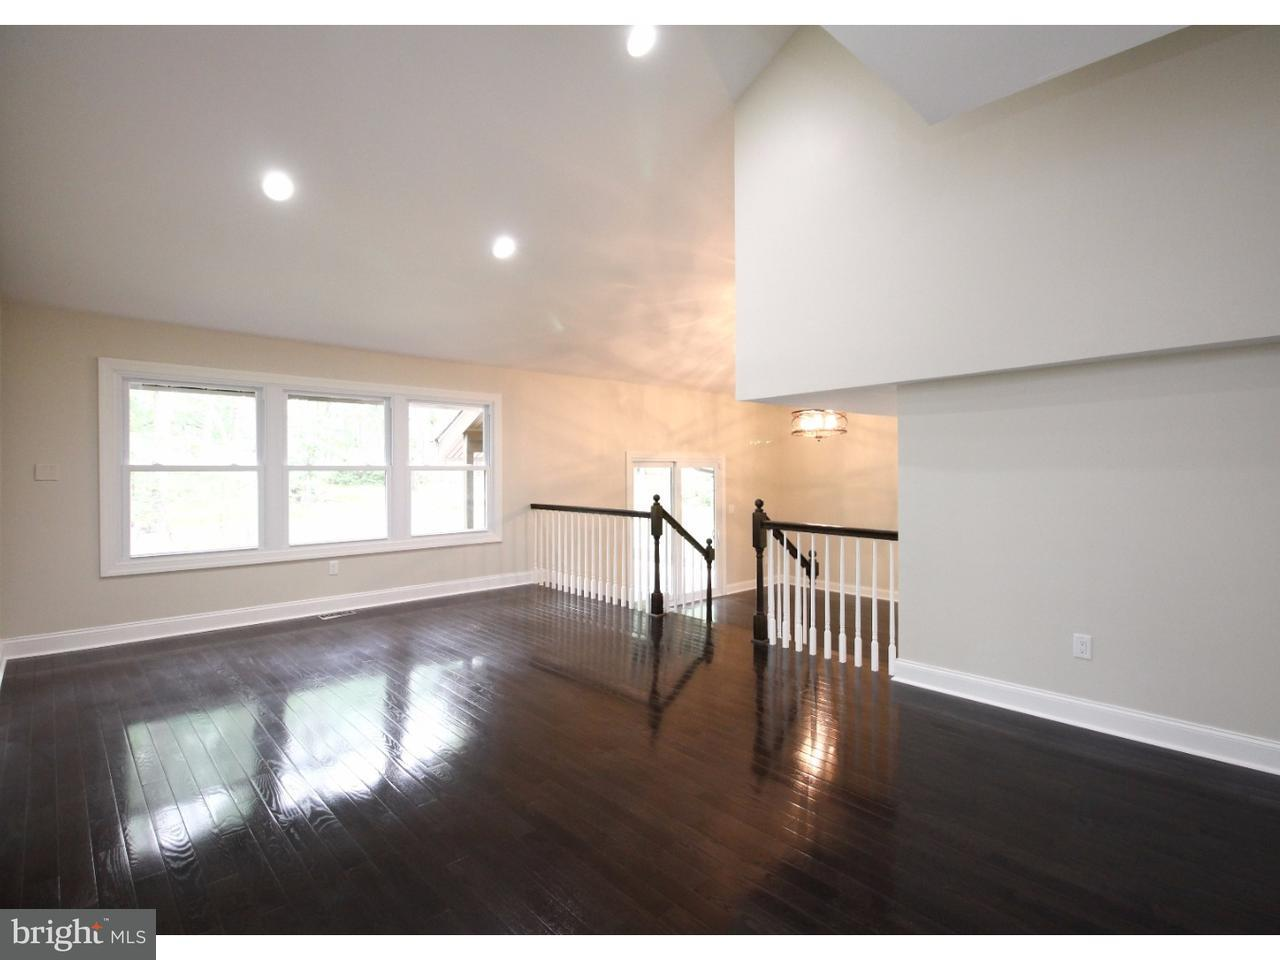 Additional photo for property listing at 658 TABERNACLE Road  Medford, Nueva Jersey 08055 Estados Unidos